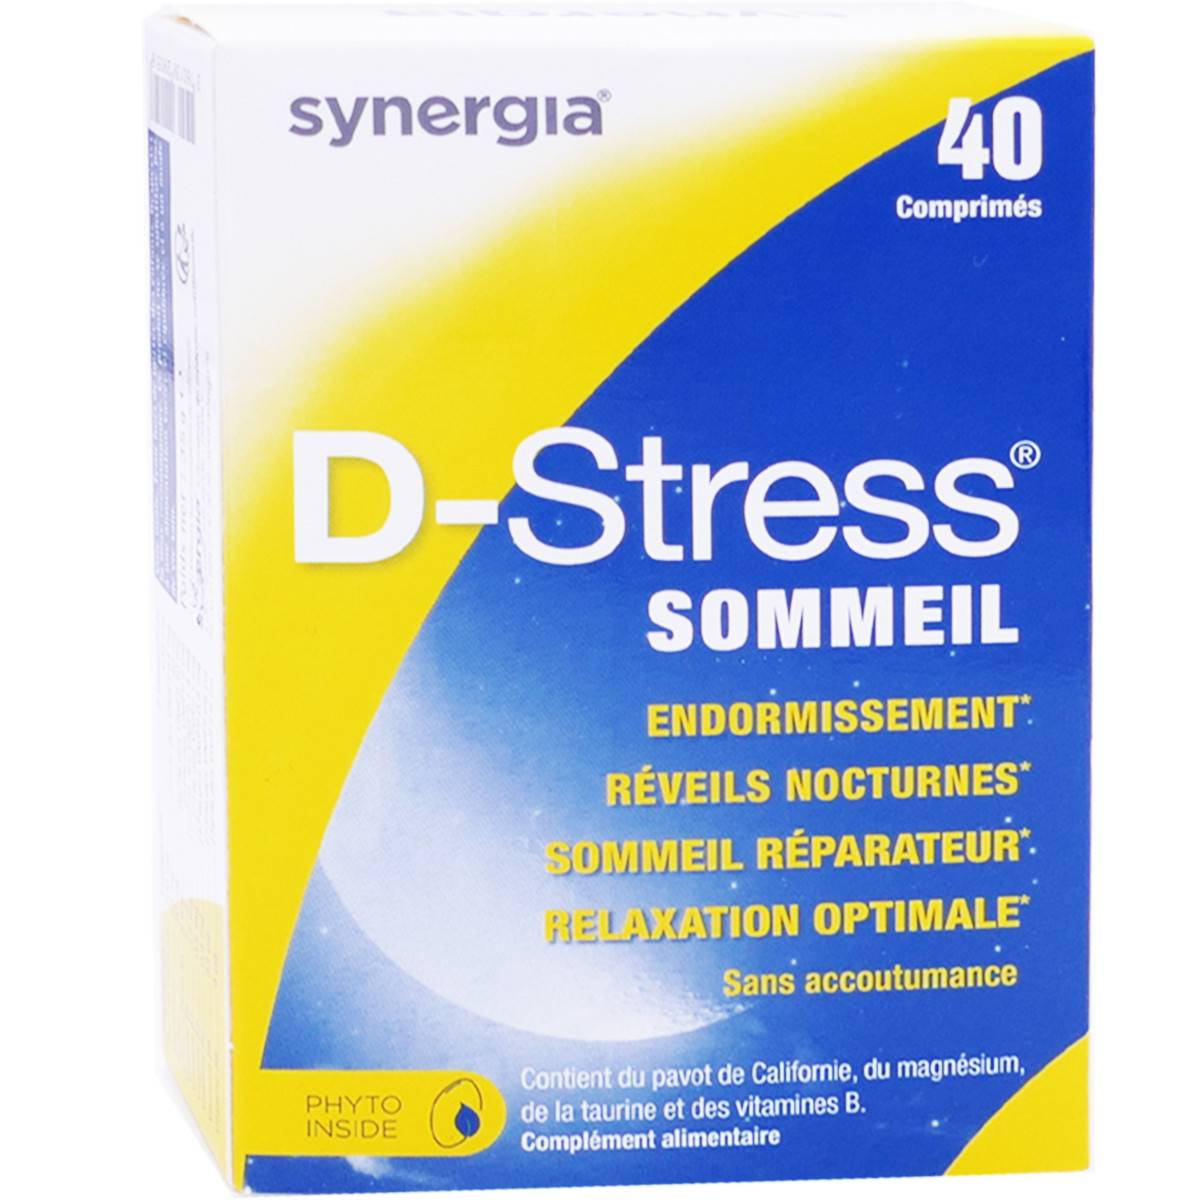 Synergia d-stress sommeil 40 comprimes